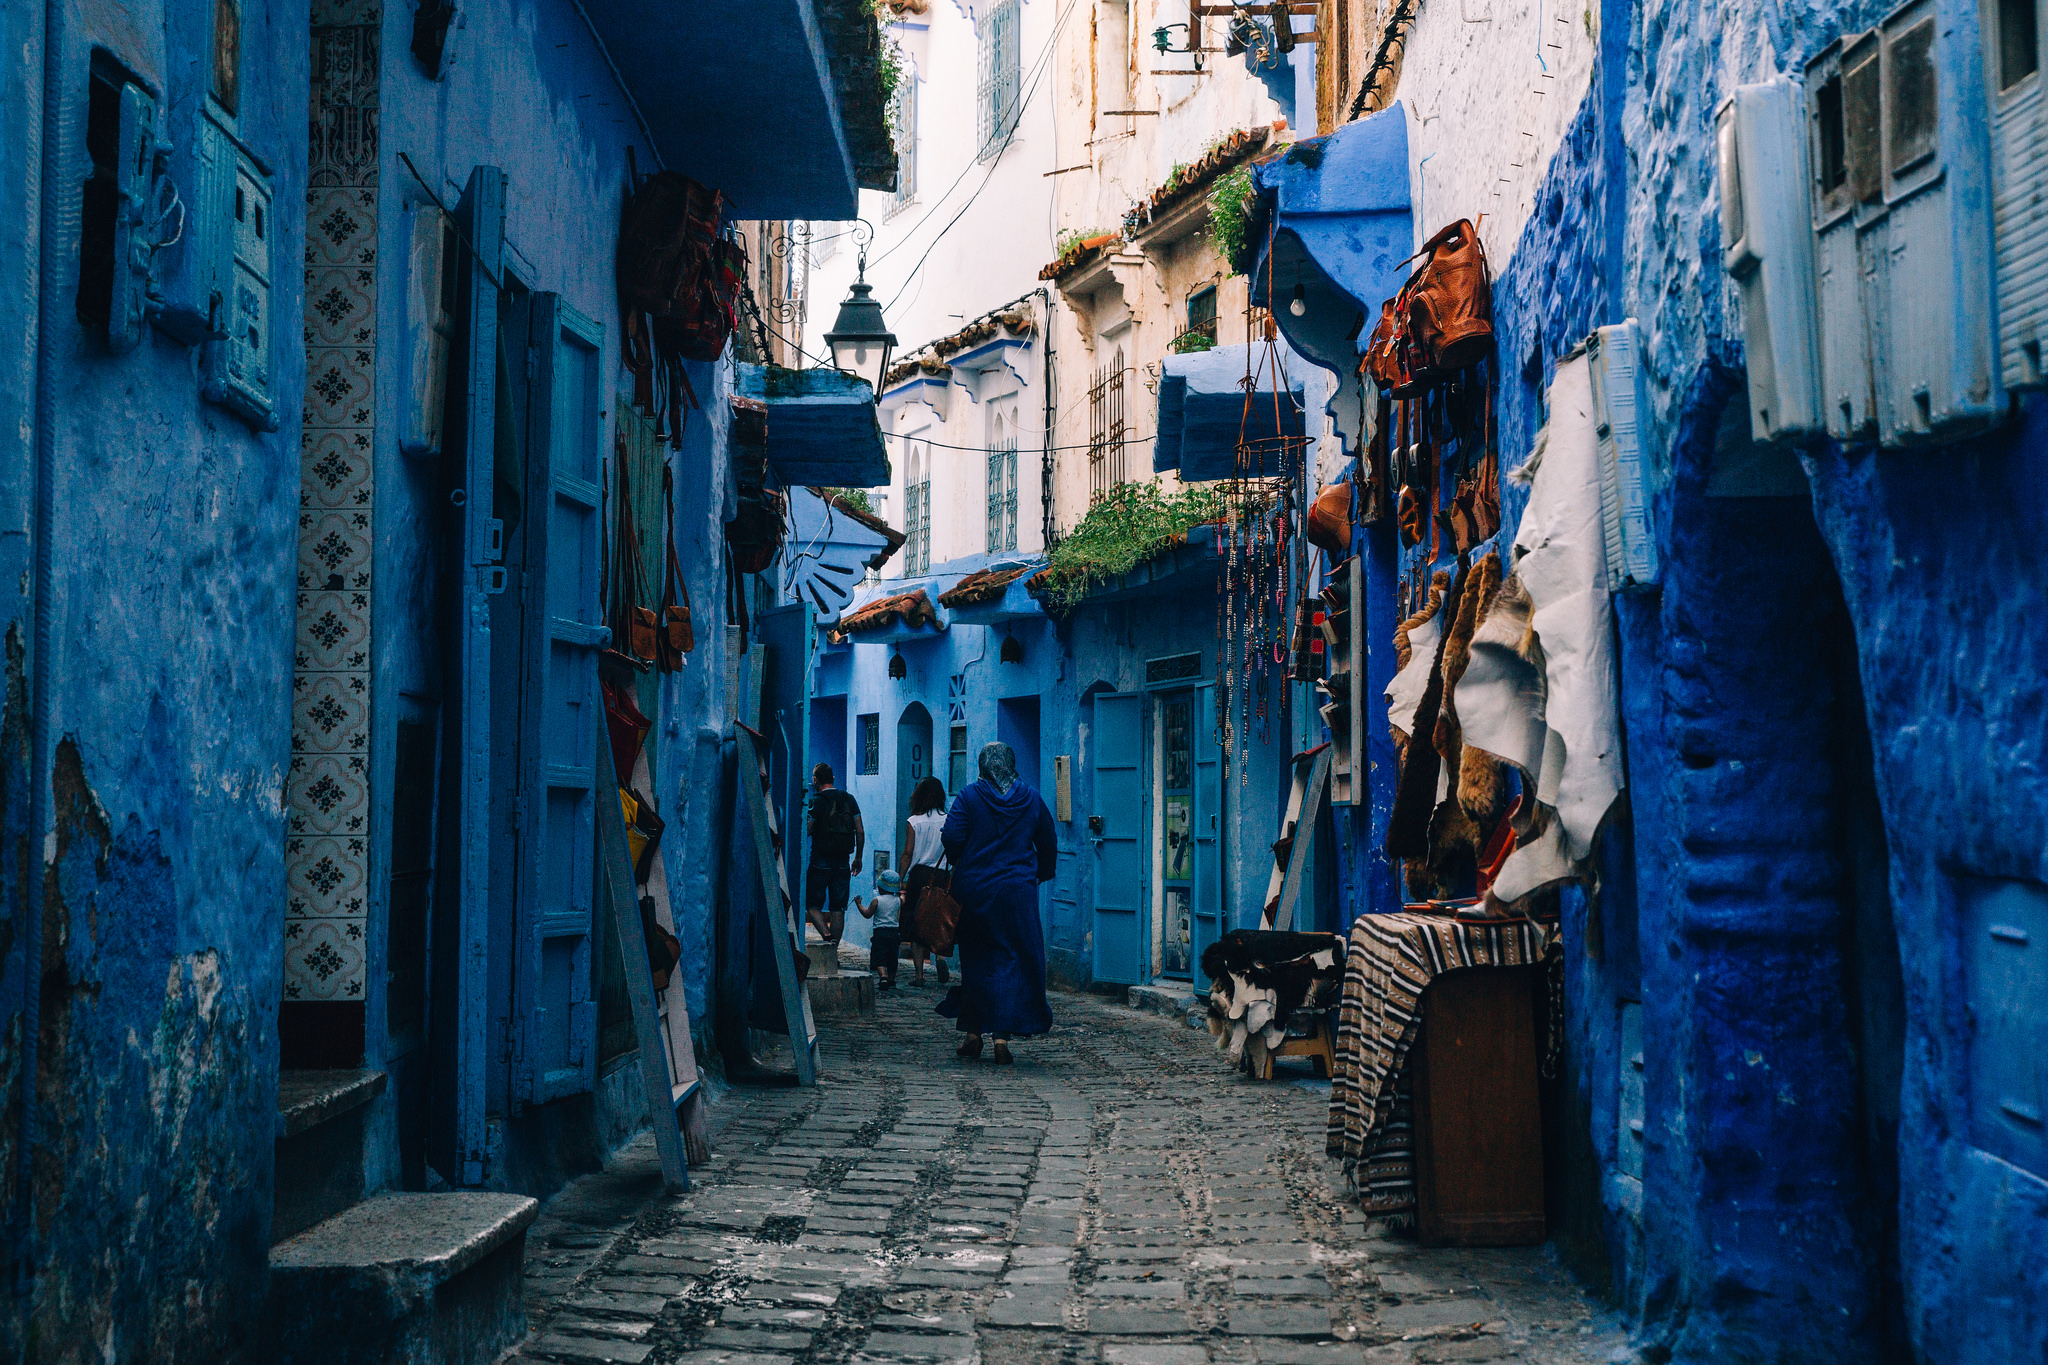 Copy of Chefchaouen